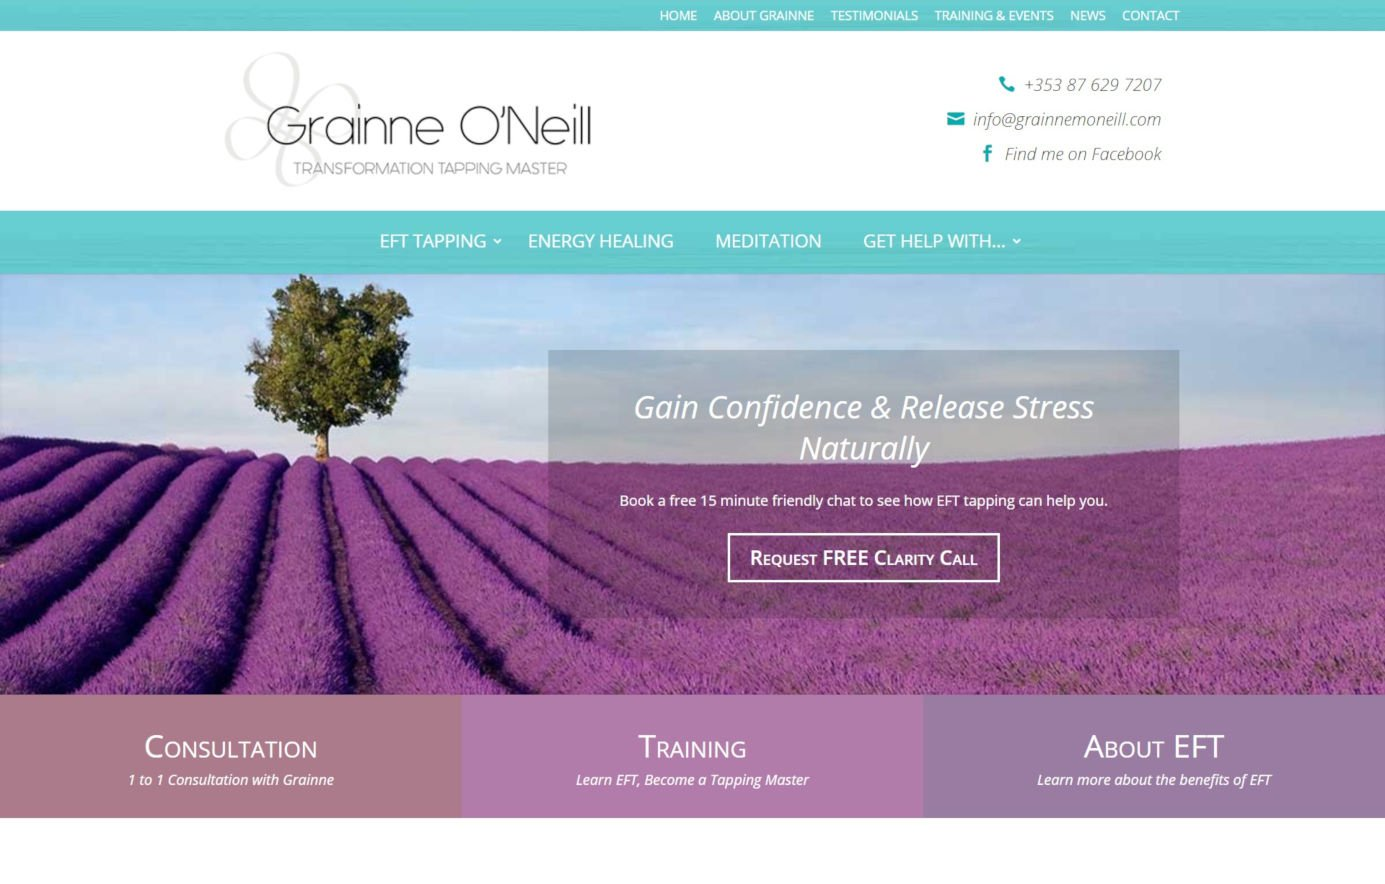 Grainne O'Neill - Holistic Website Design - Featured